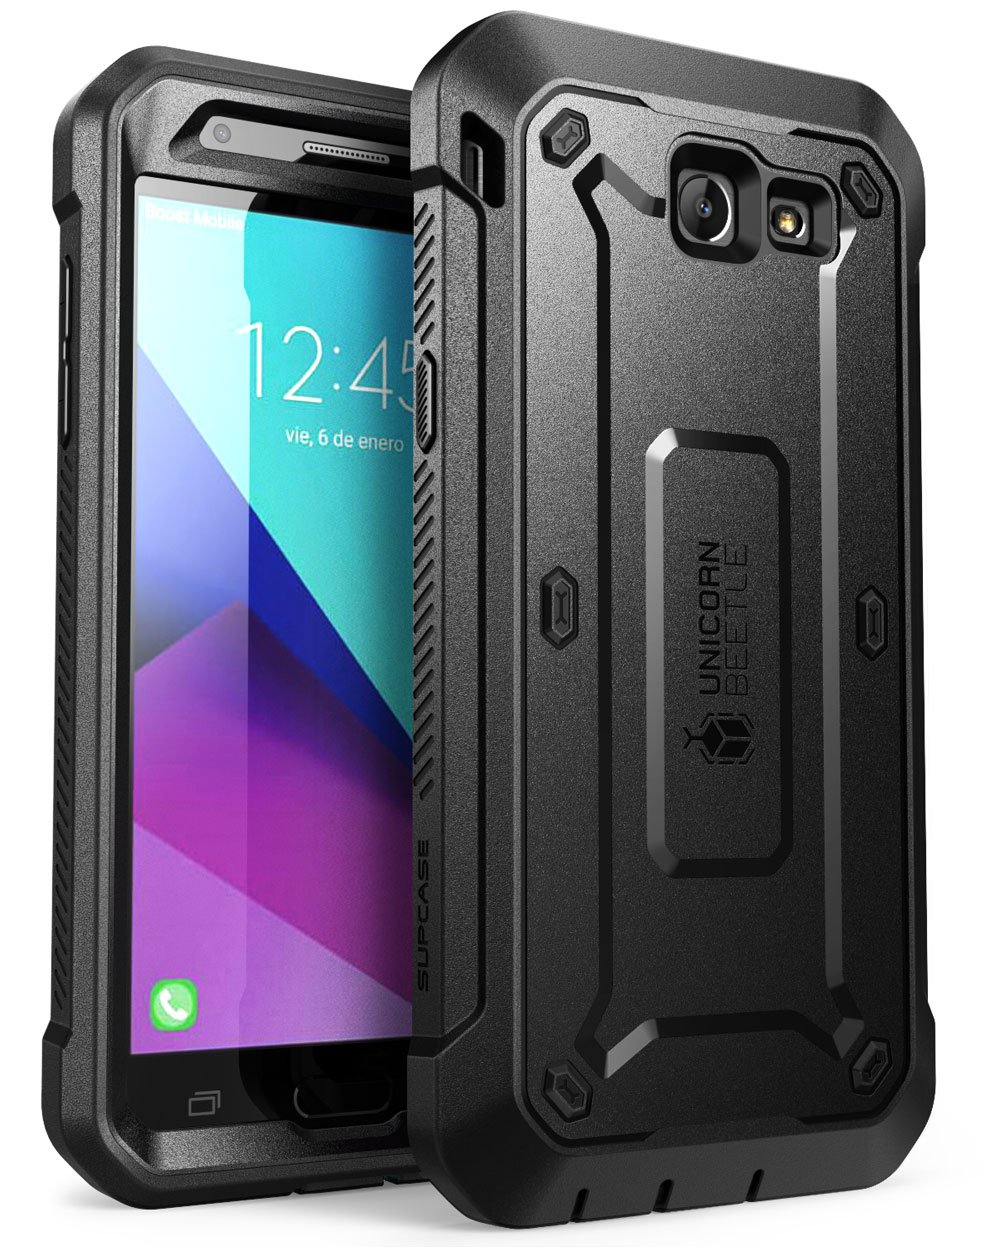 Samsung Galaxy J7 case, Galaxy Halo 2017 Case, SUPCASE Unicorn Beetle Pro Series Full-body Holster with Built-in Screen Protector for Galaxy Halo/J7 2017/J7 Sky Pro/J7 Perx/J7V 2017/J7 Prime (Black/Black) 4334970925